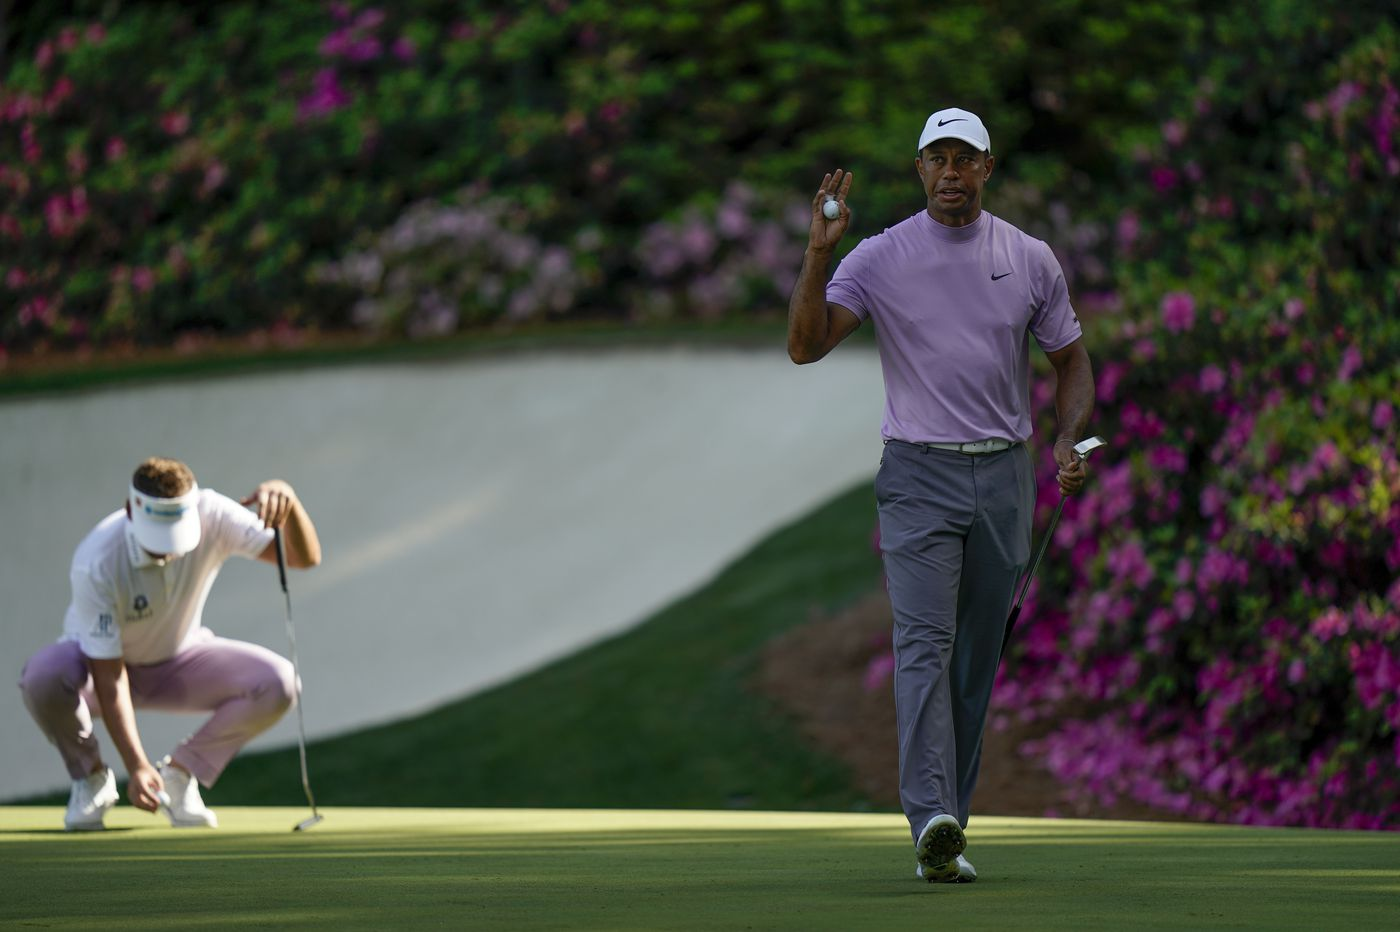 It's something I'll never forget - Woods on Masters glory